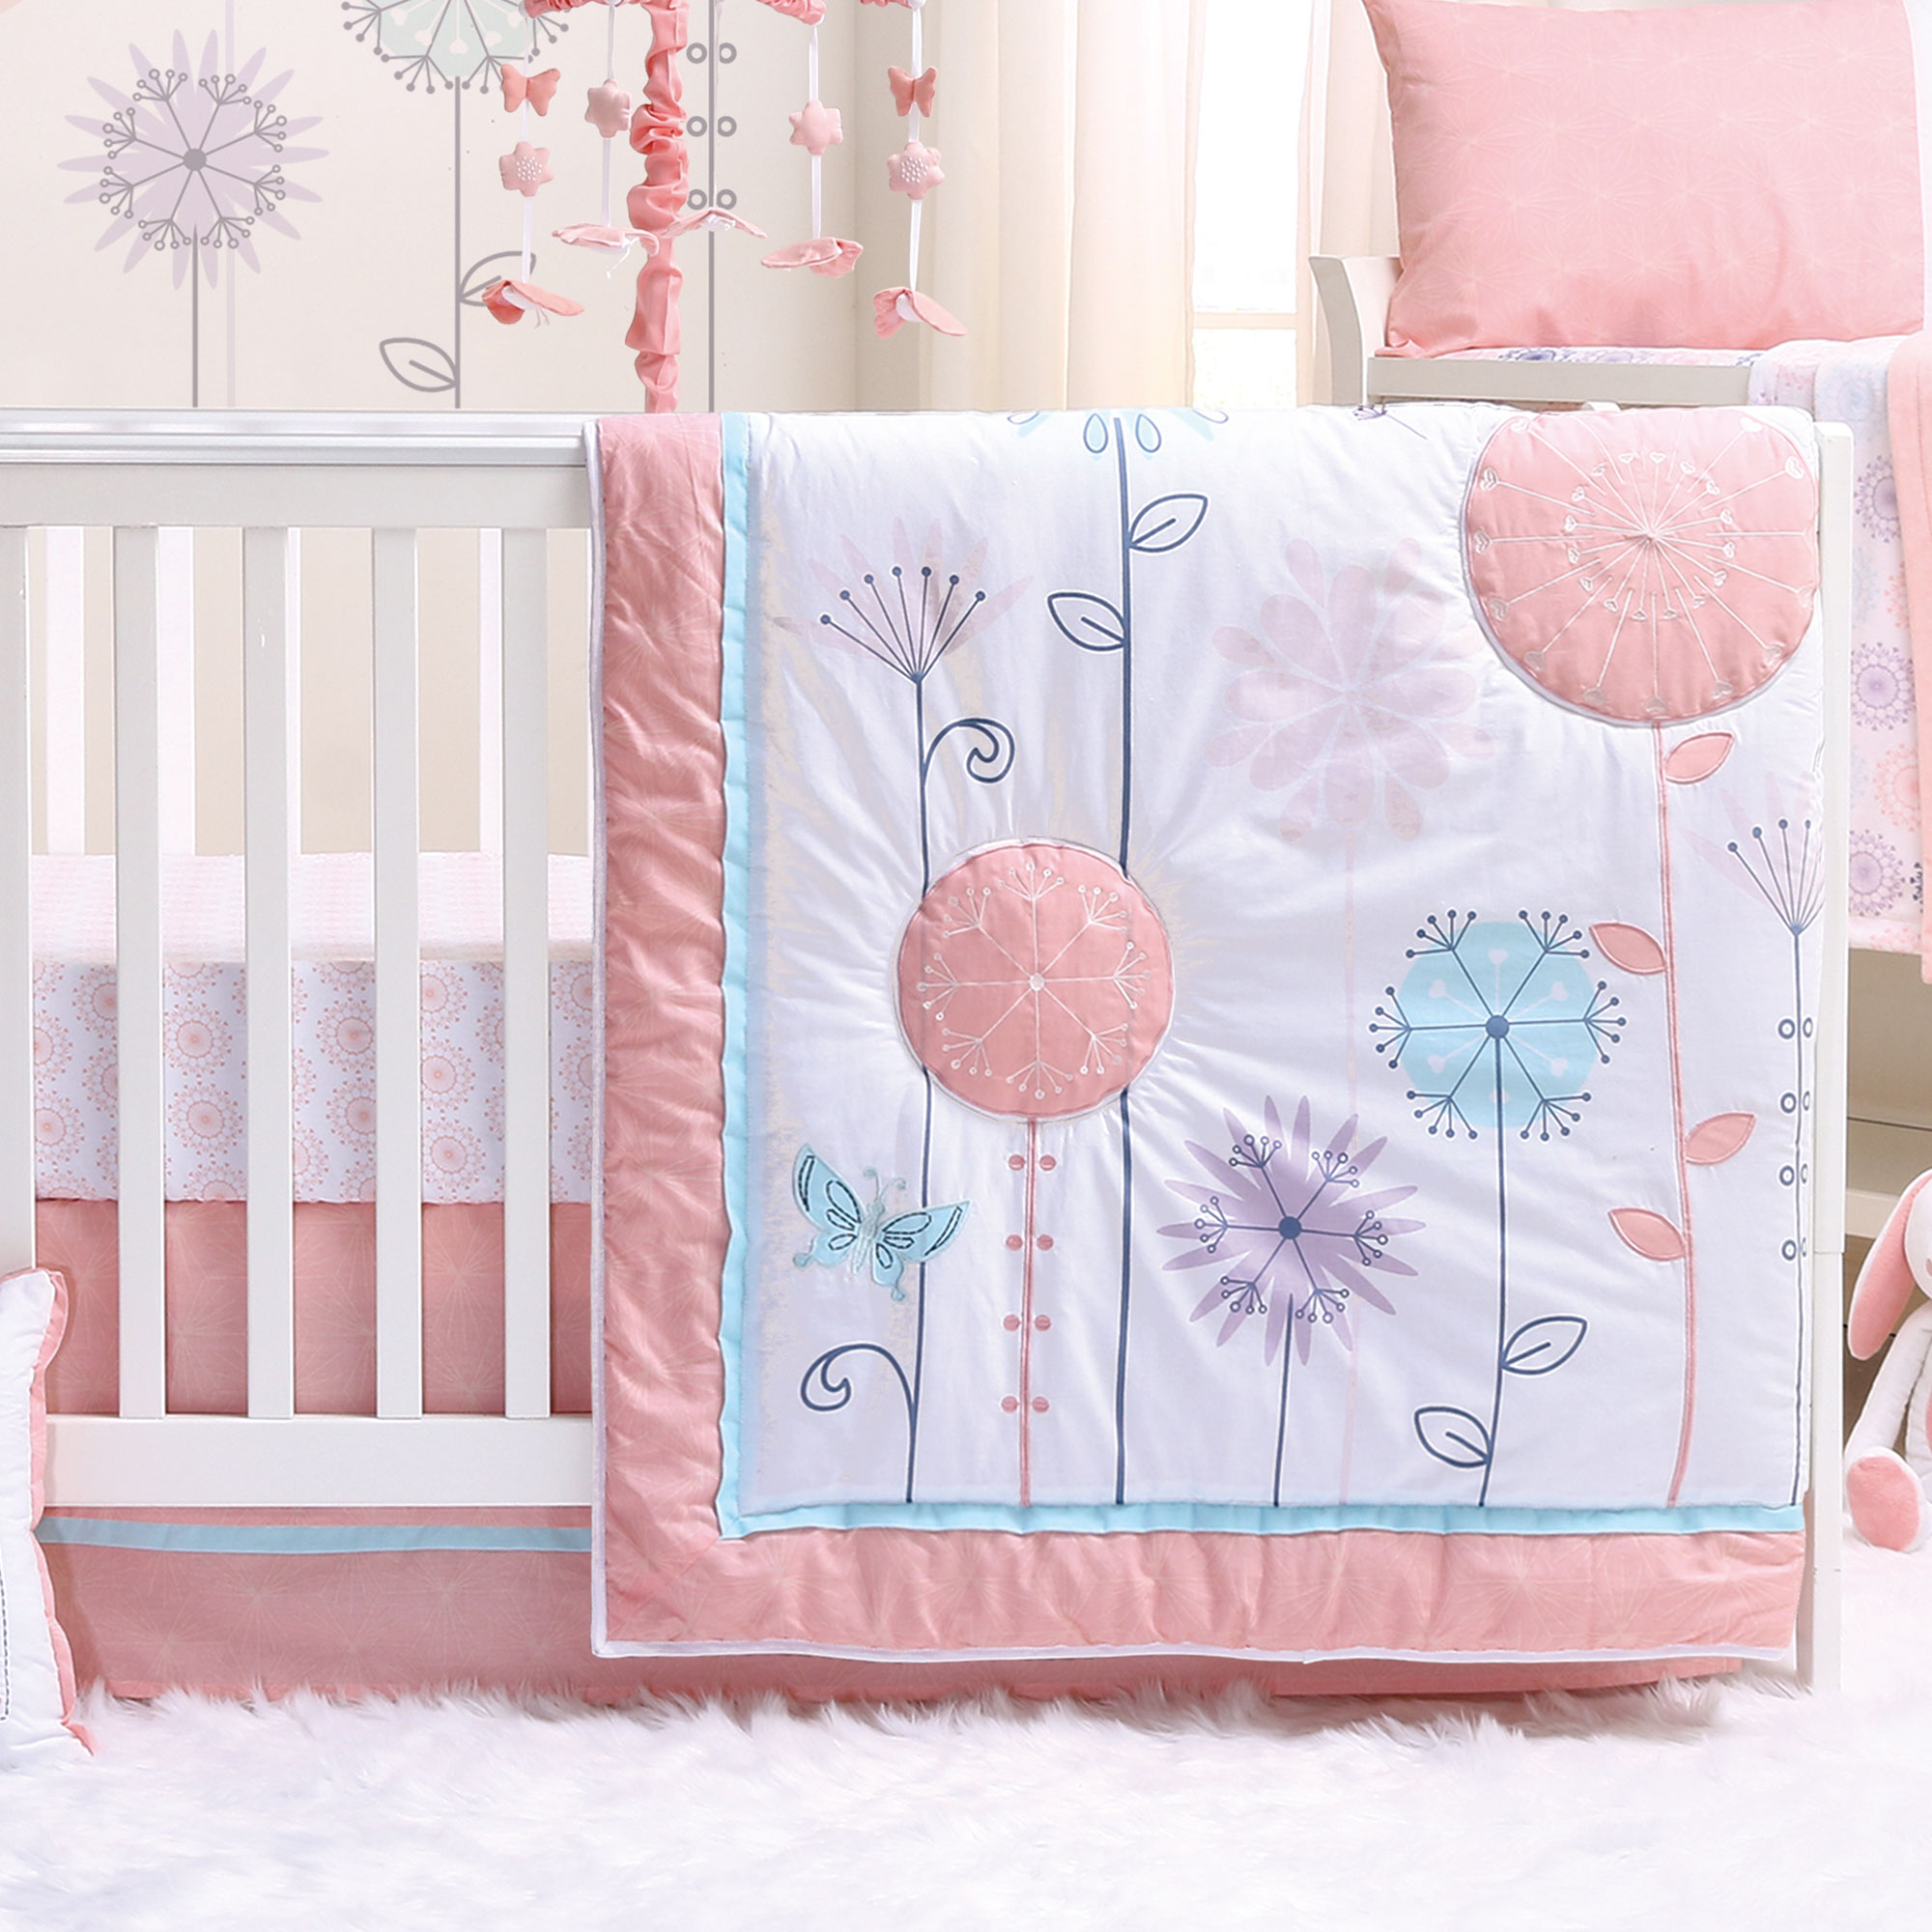 wildflower 3 piece baby crib bedding set coral purple floral butterfly